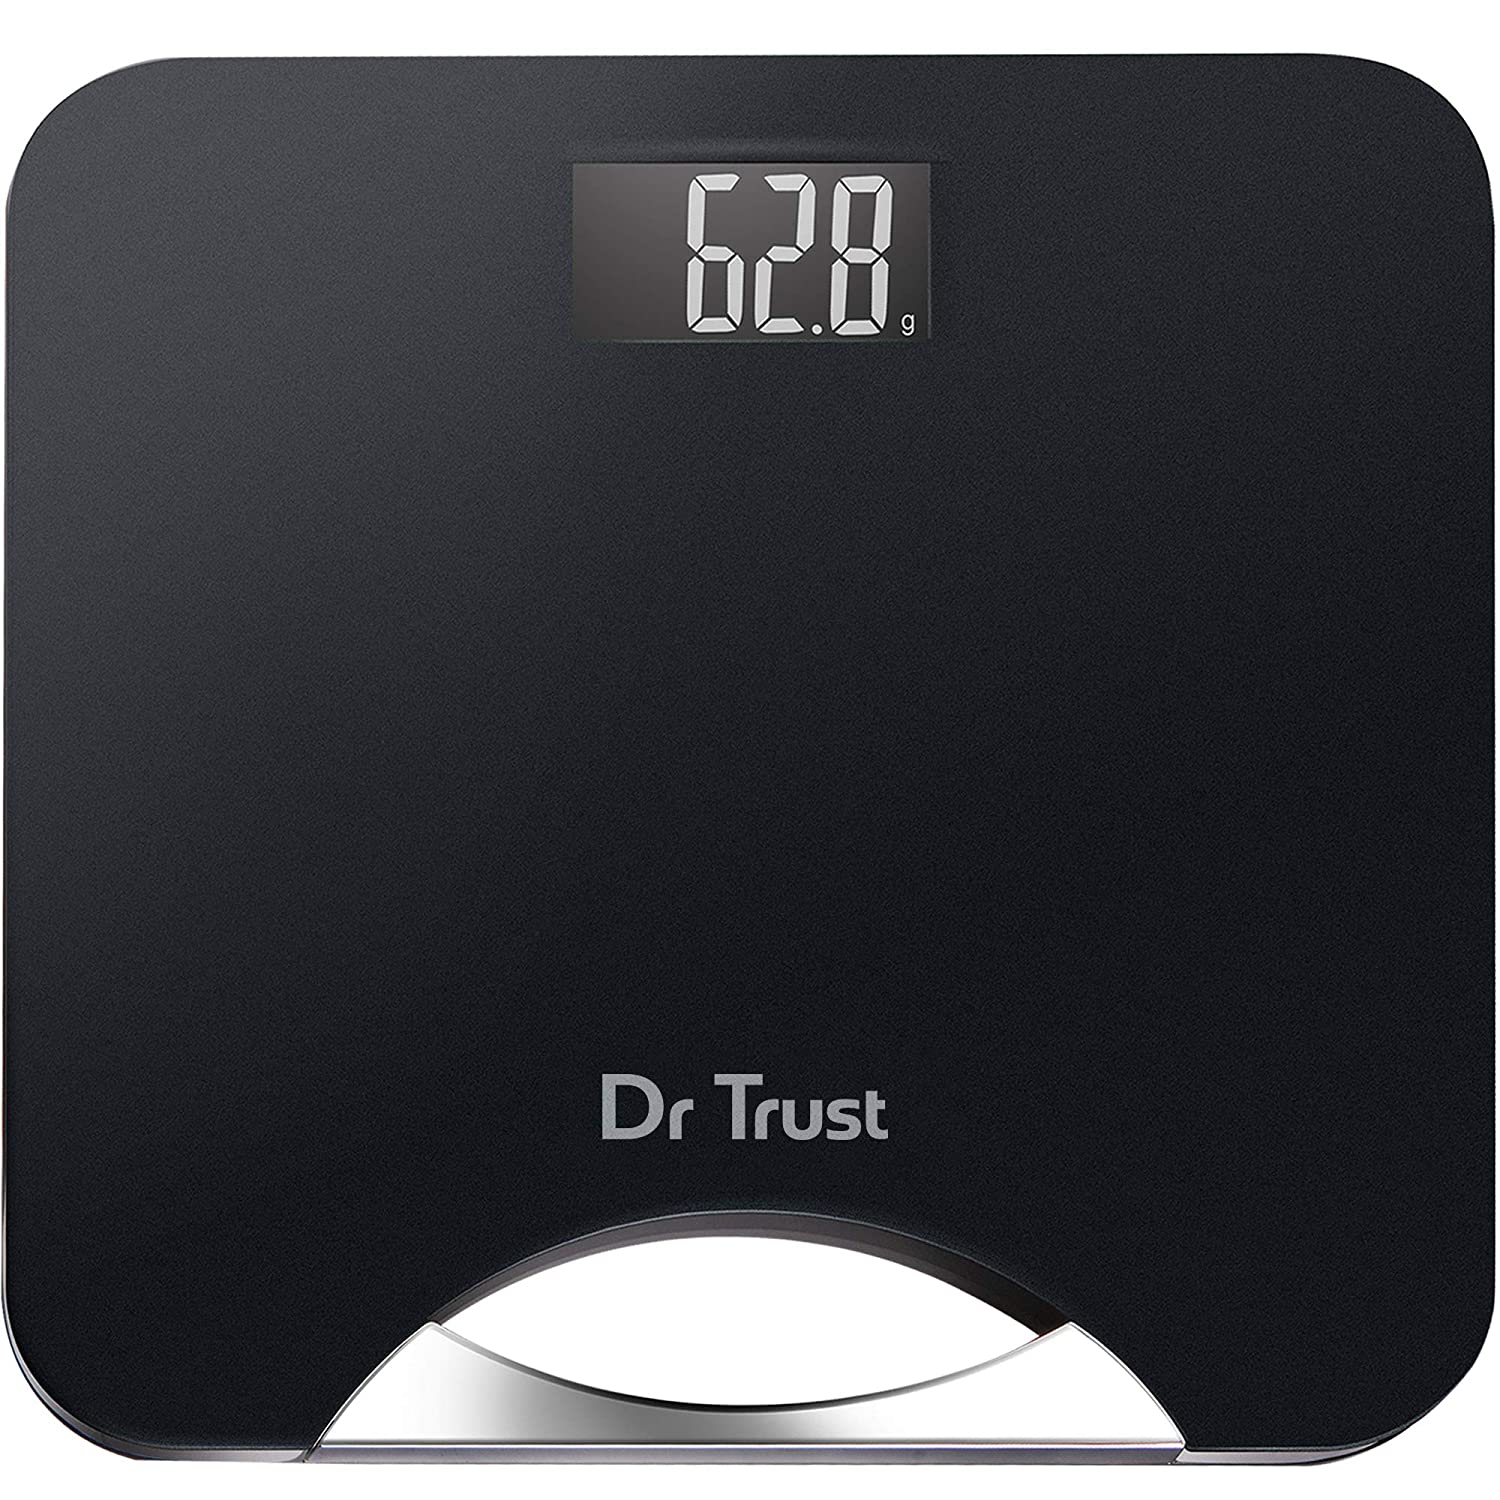 Dr Trust Absolute Handy Personal Digital Scale